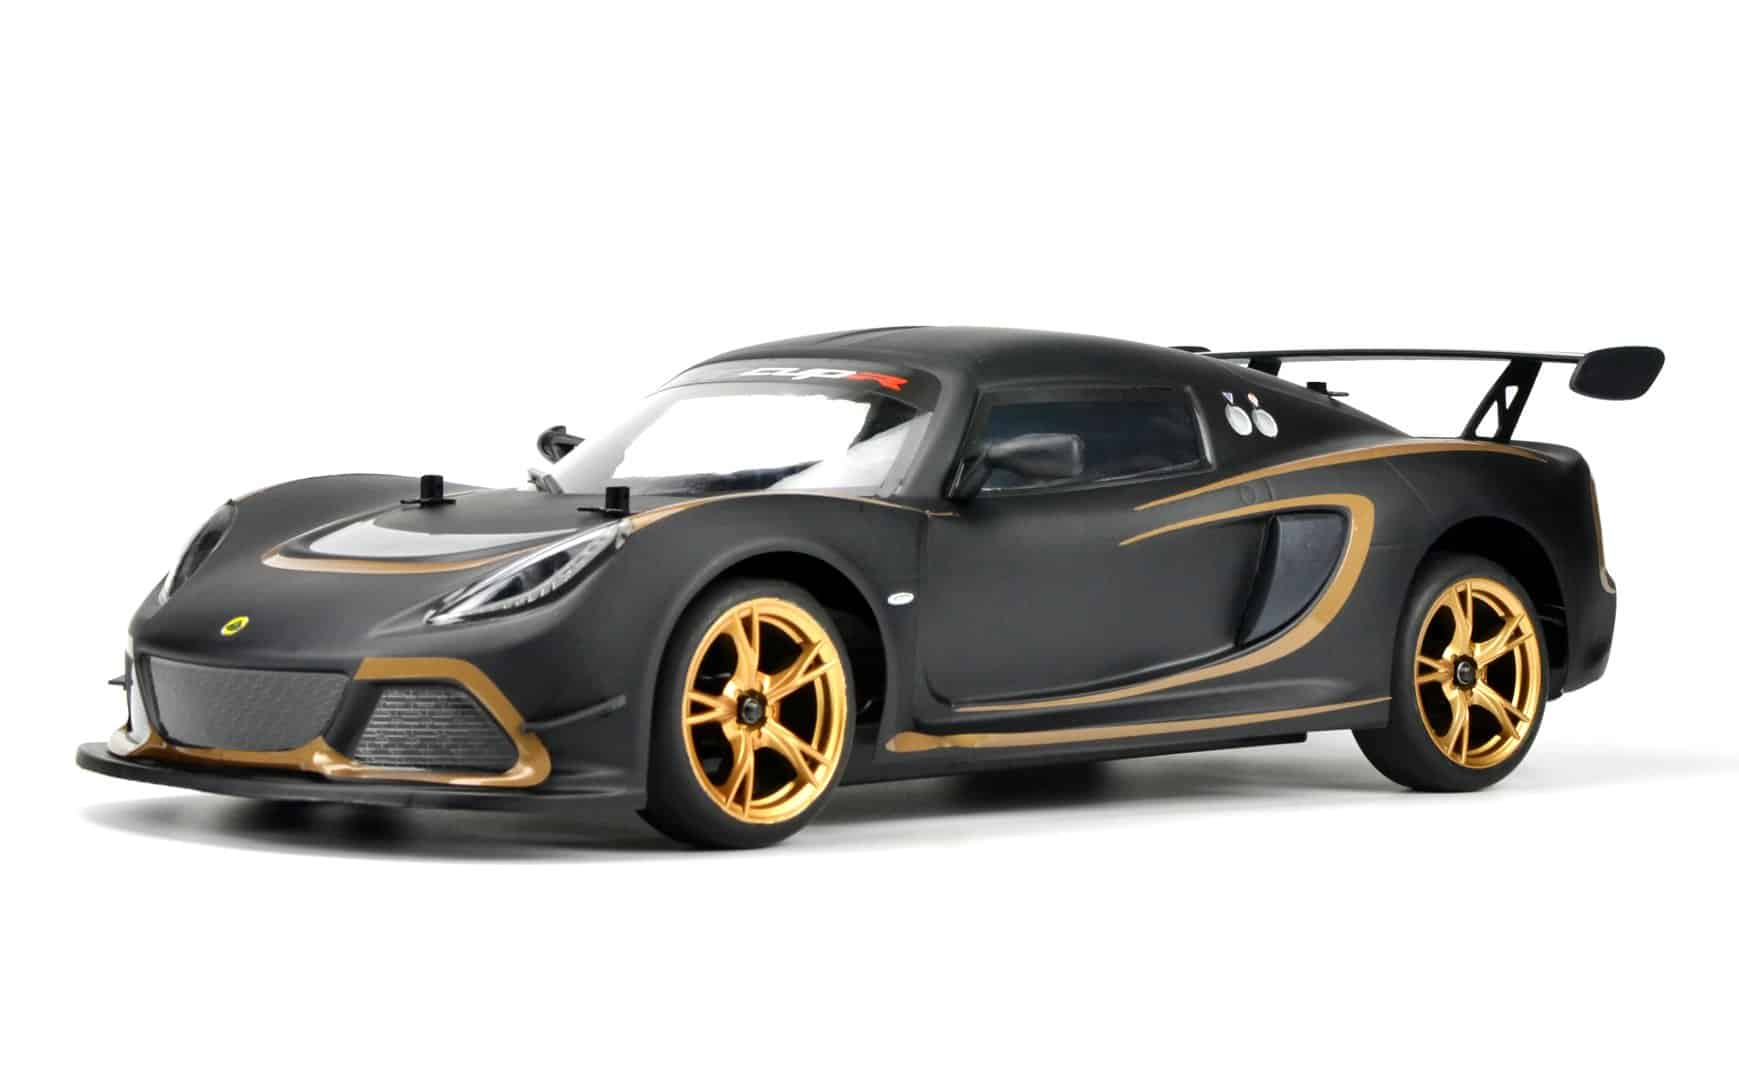 Carisma's Latest: A Lotus Exige V6 Cup R Ready-to-Run [Video & Photos]